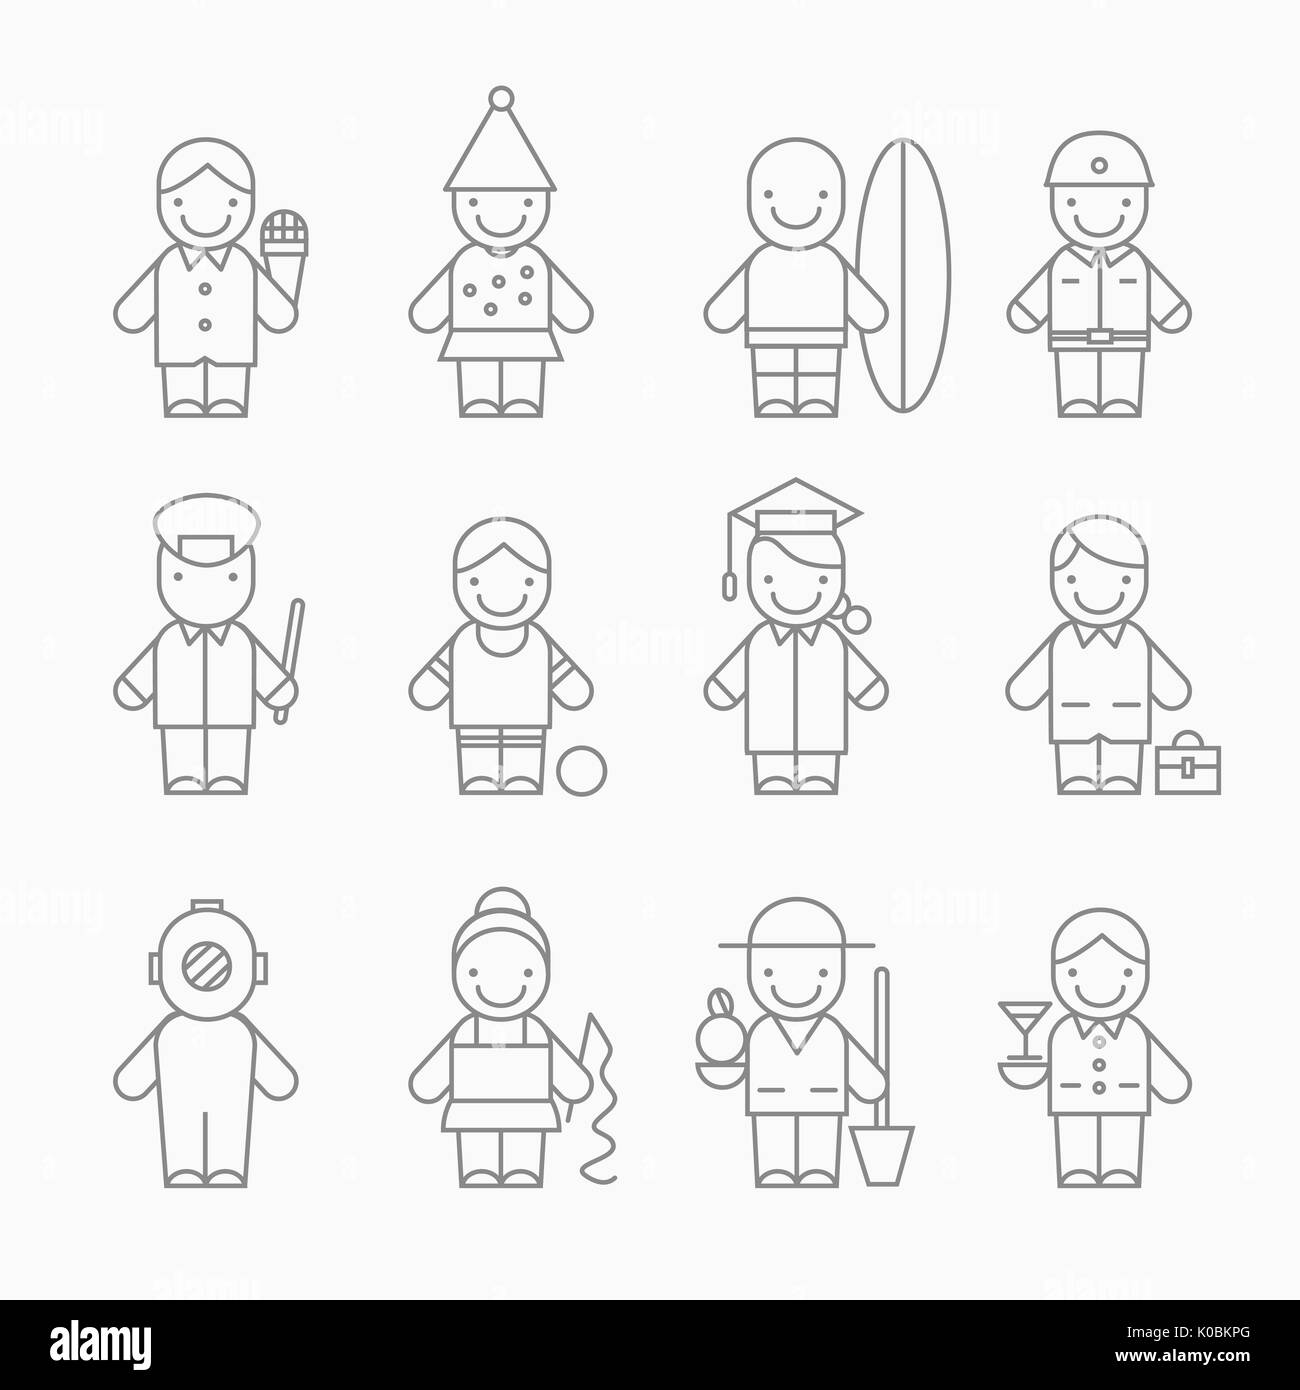 Icons of various career people - Stock Image